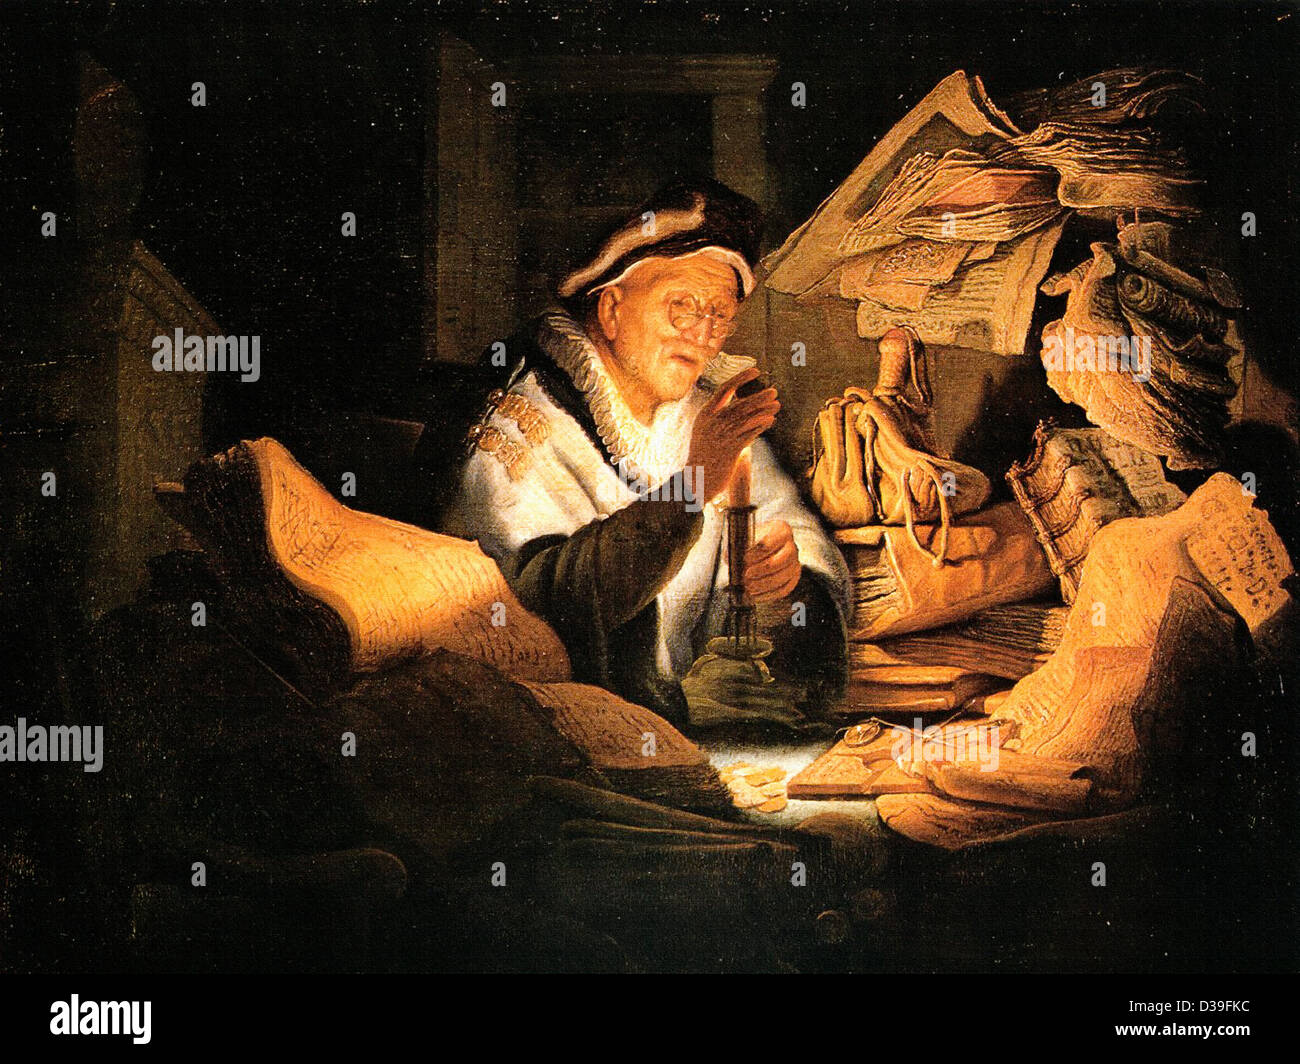 Rembrandt van Rijn, The Rich Man from the Parable. 1627 Oil. Baroque. - Stock Image